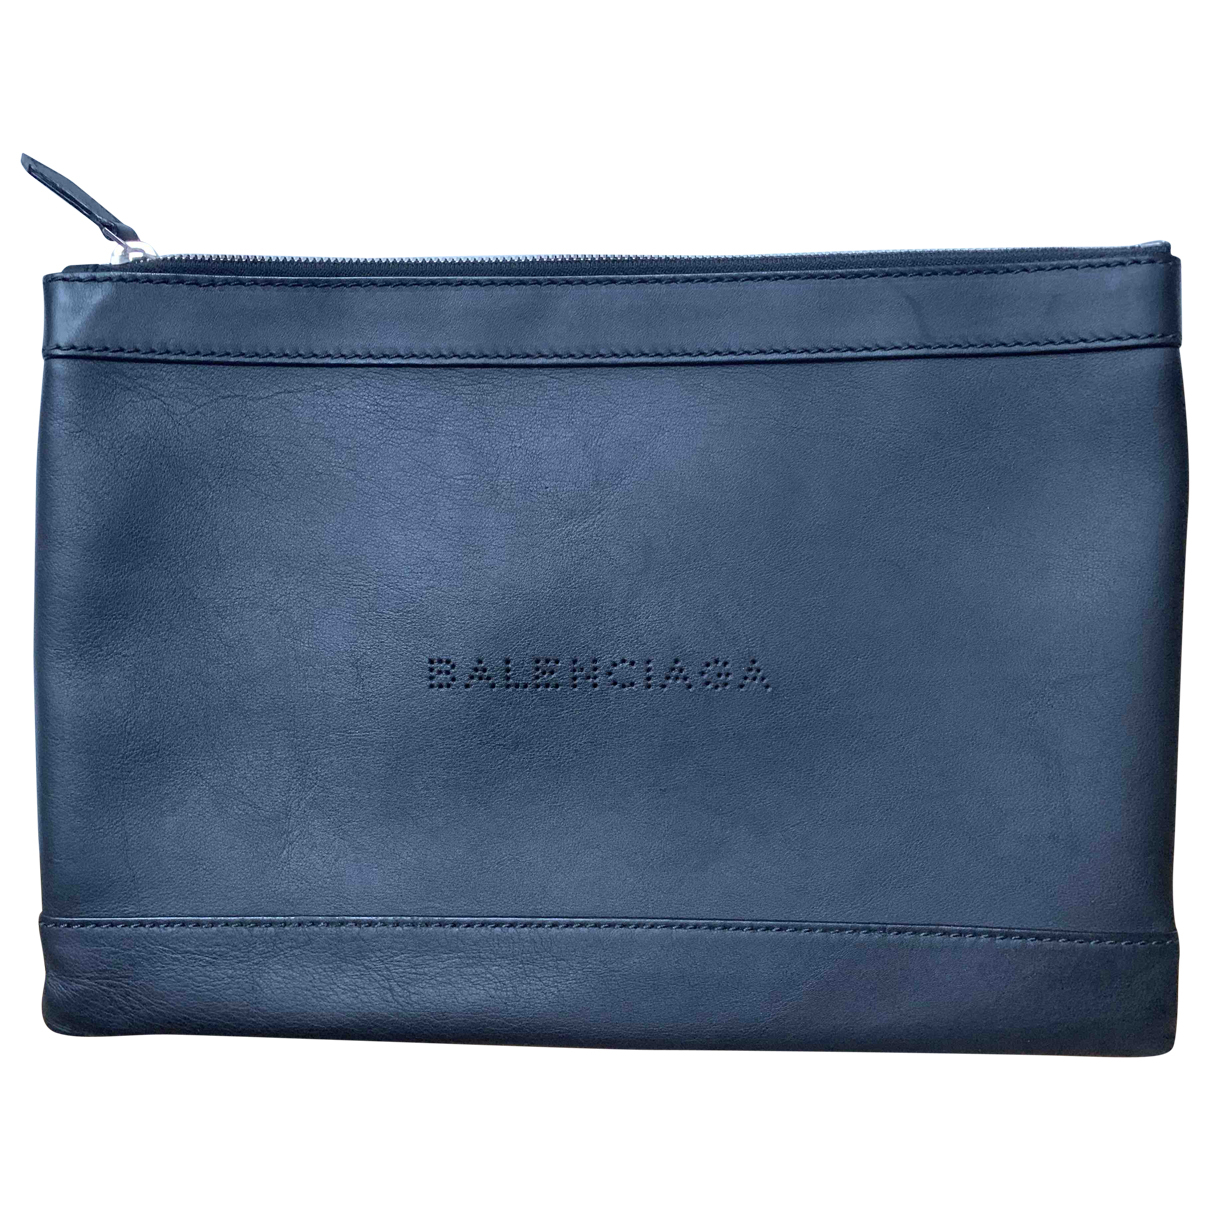 Balenciaga N Black Leather Small bag, wallet & cases for Men N